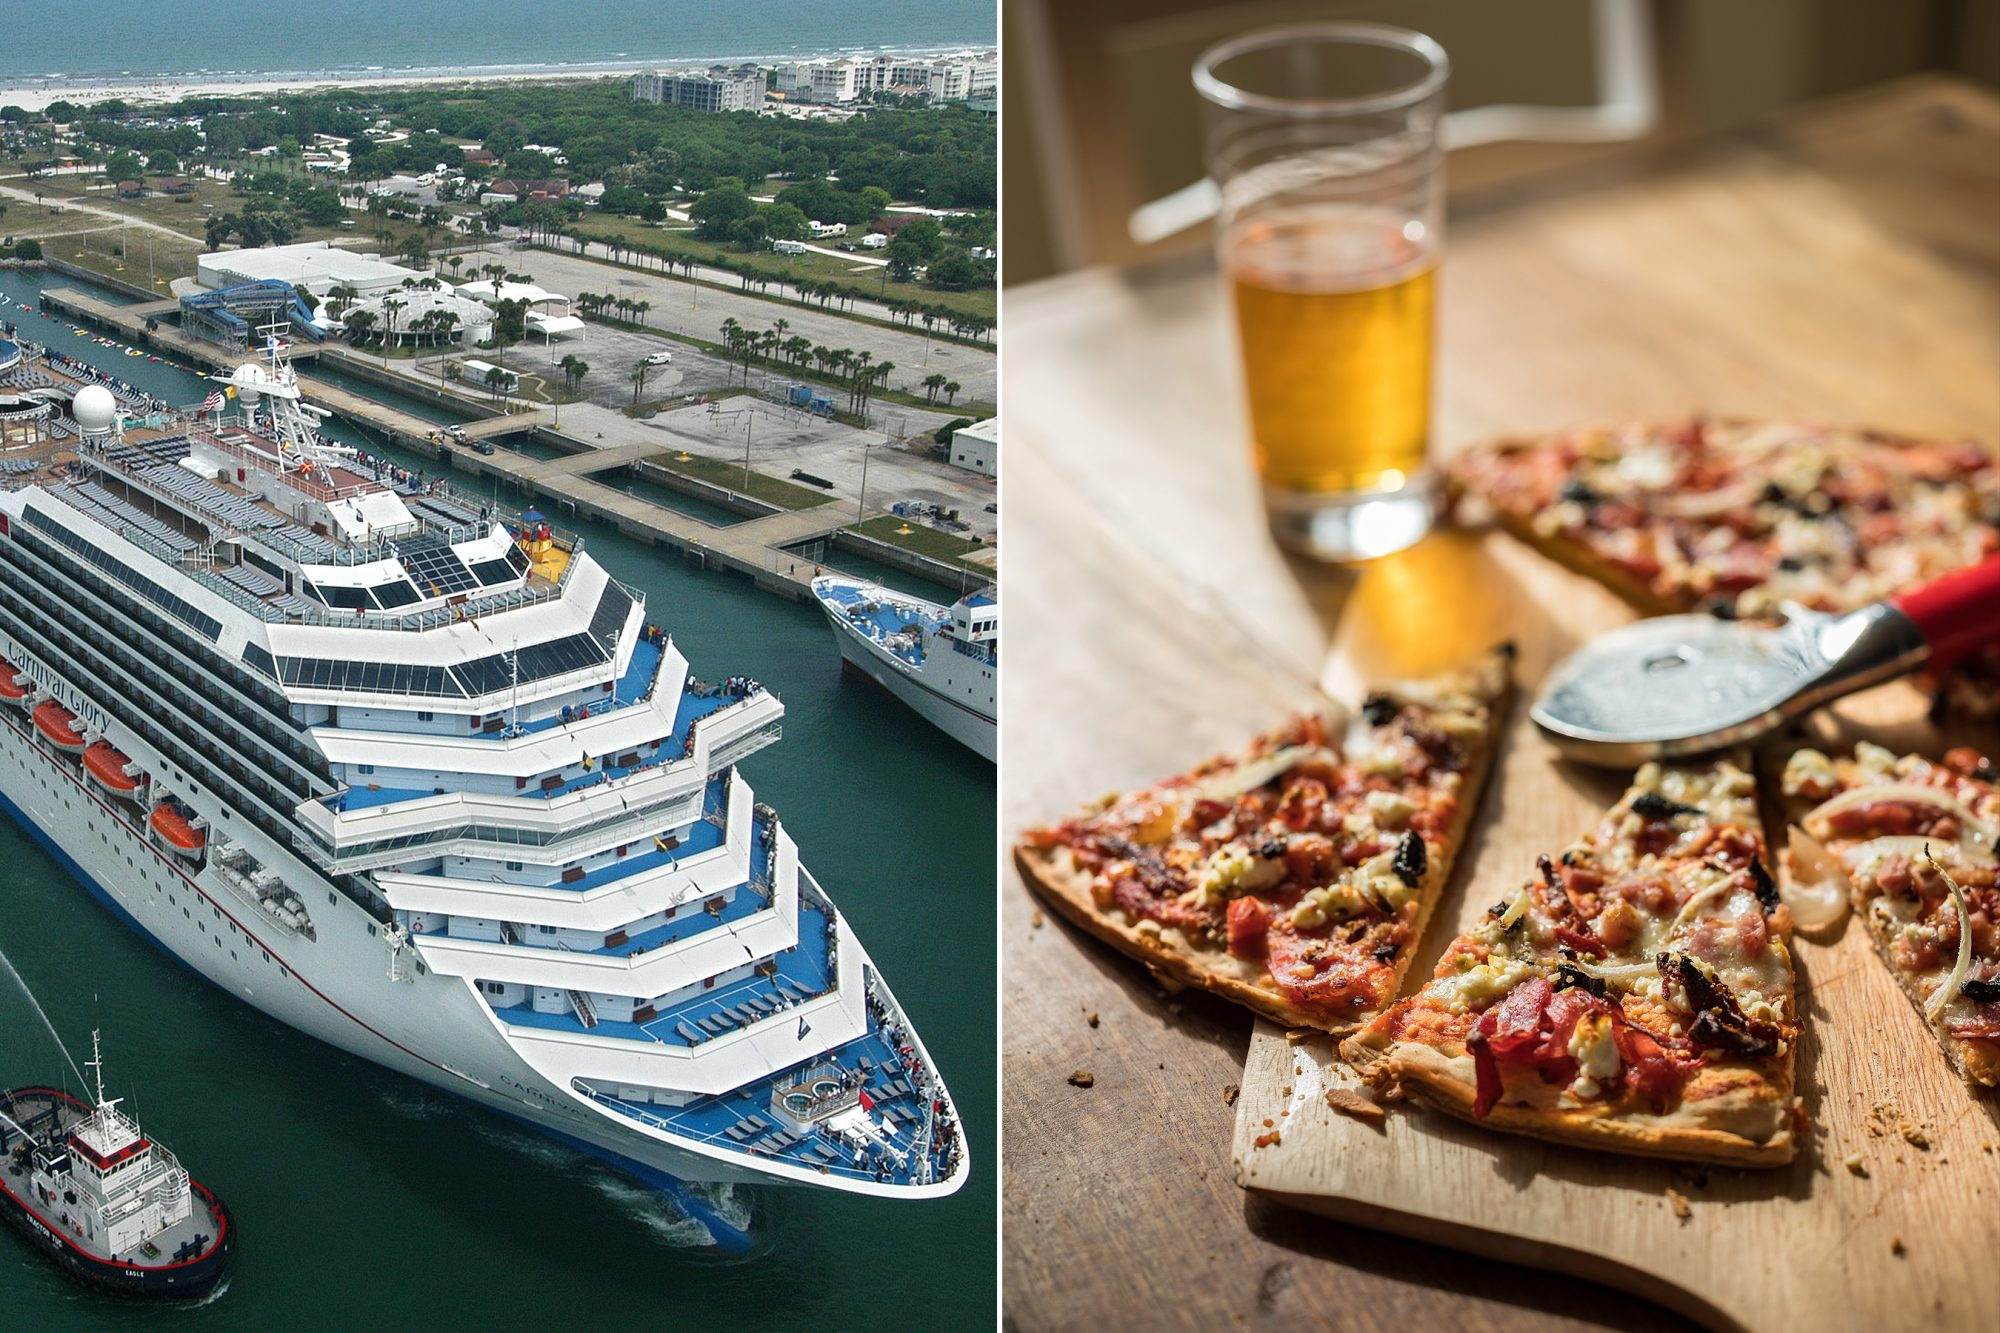 Carnival ship, beer and pizza